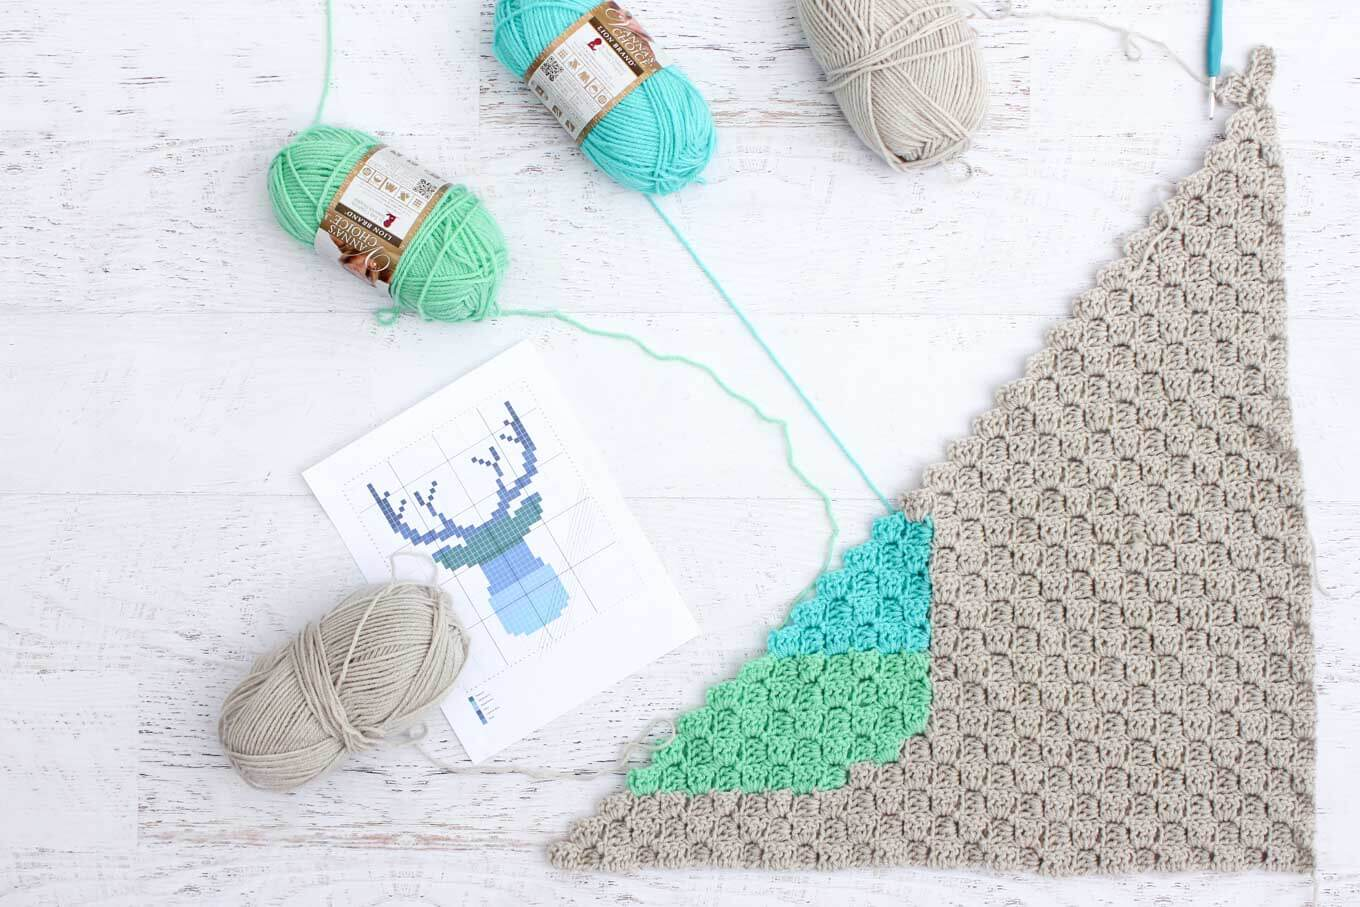 Free deer silhouette crochet afghan pattern. Download the free chart for a baby afghan or larger throw. Great first graphgan project using Vanna's Choice yarn.